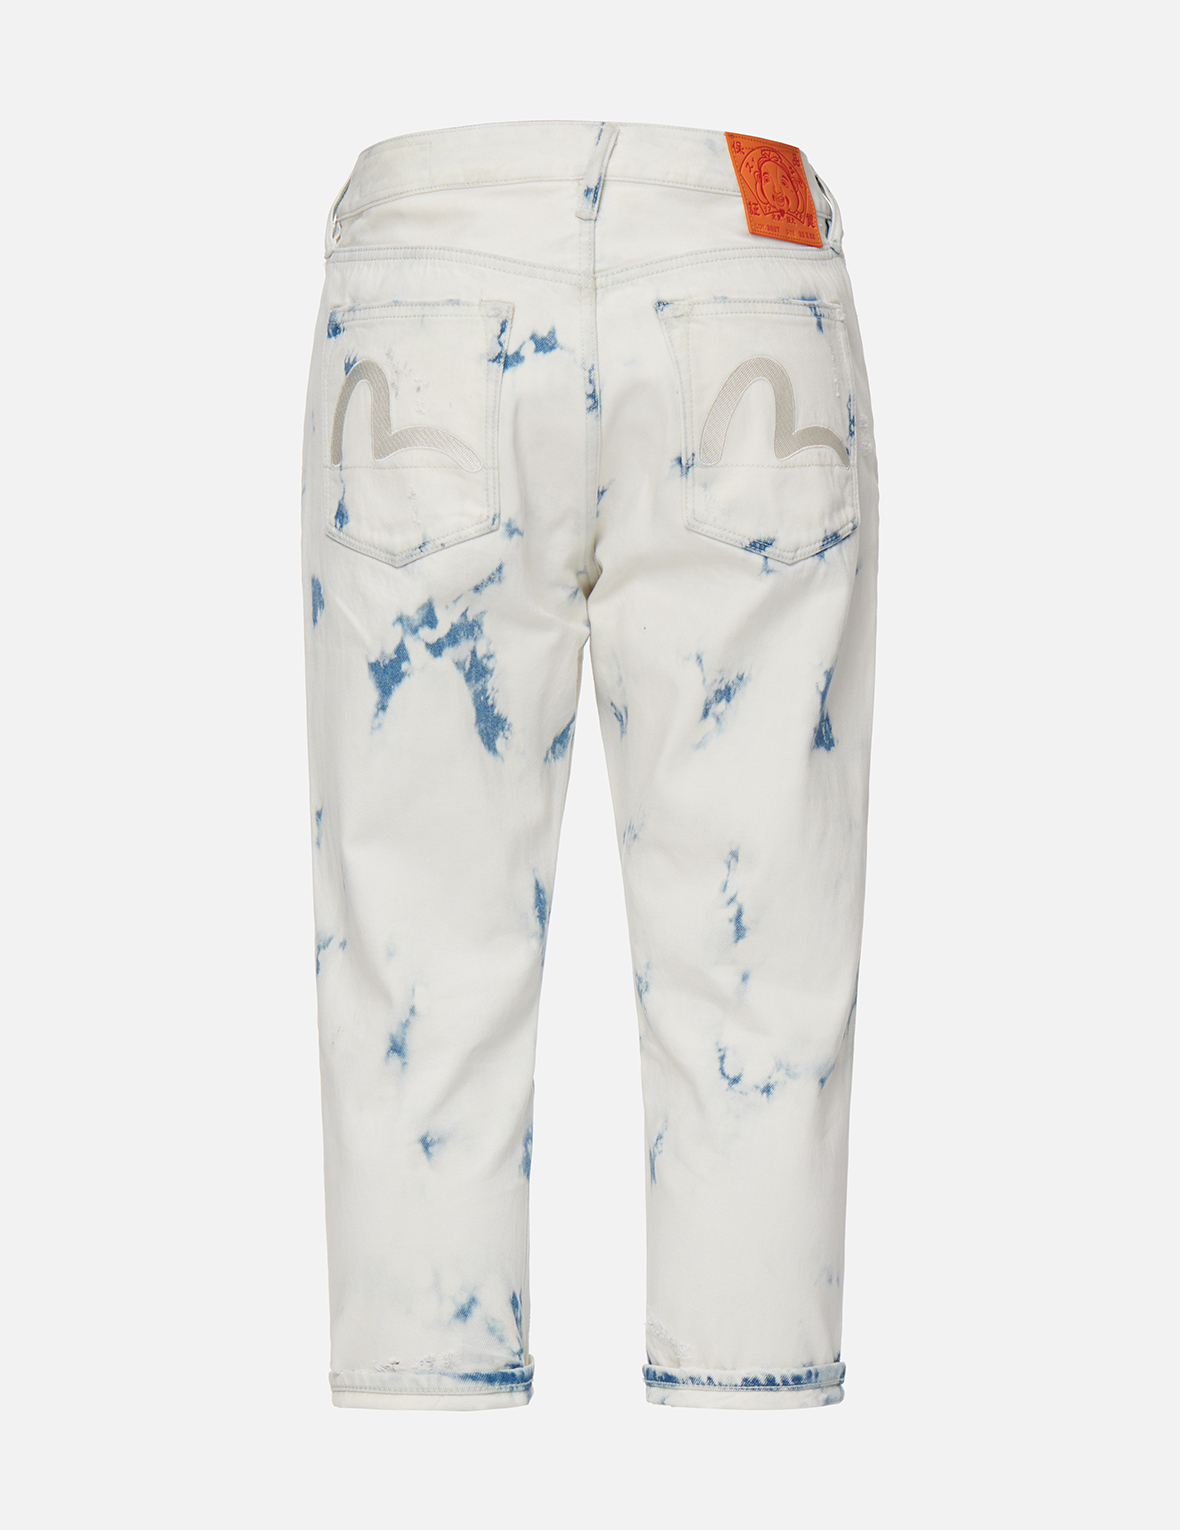 Seagull Embroidery Bleach-dye Cropped Jeans